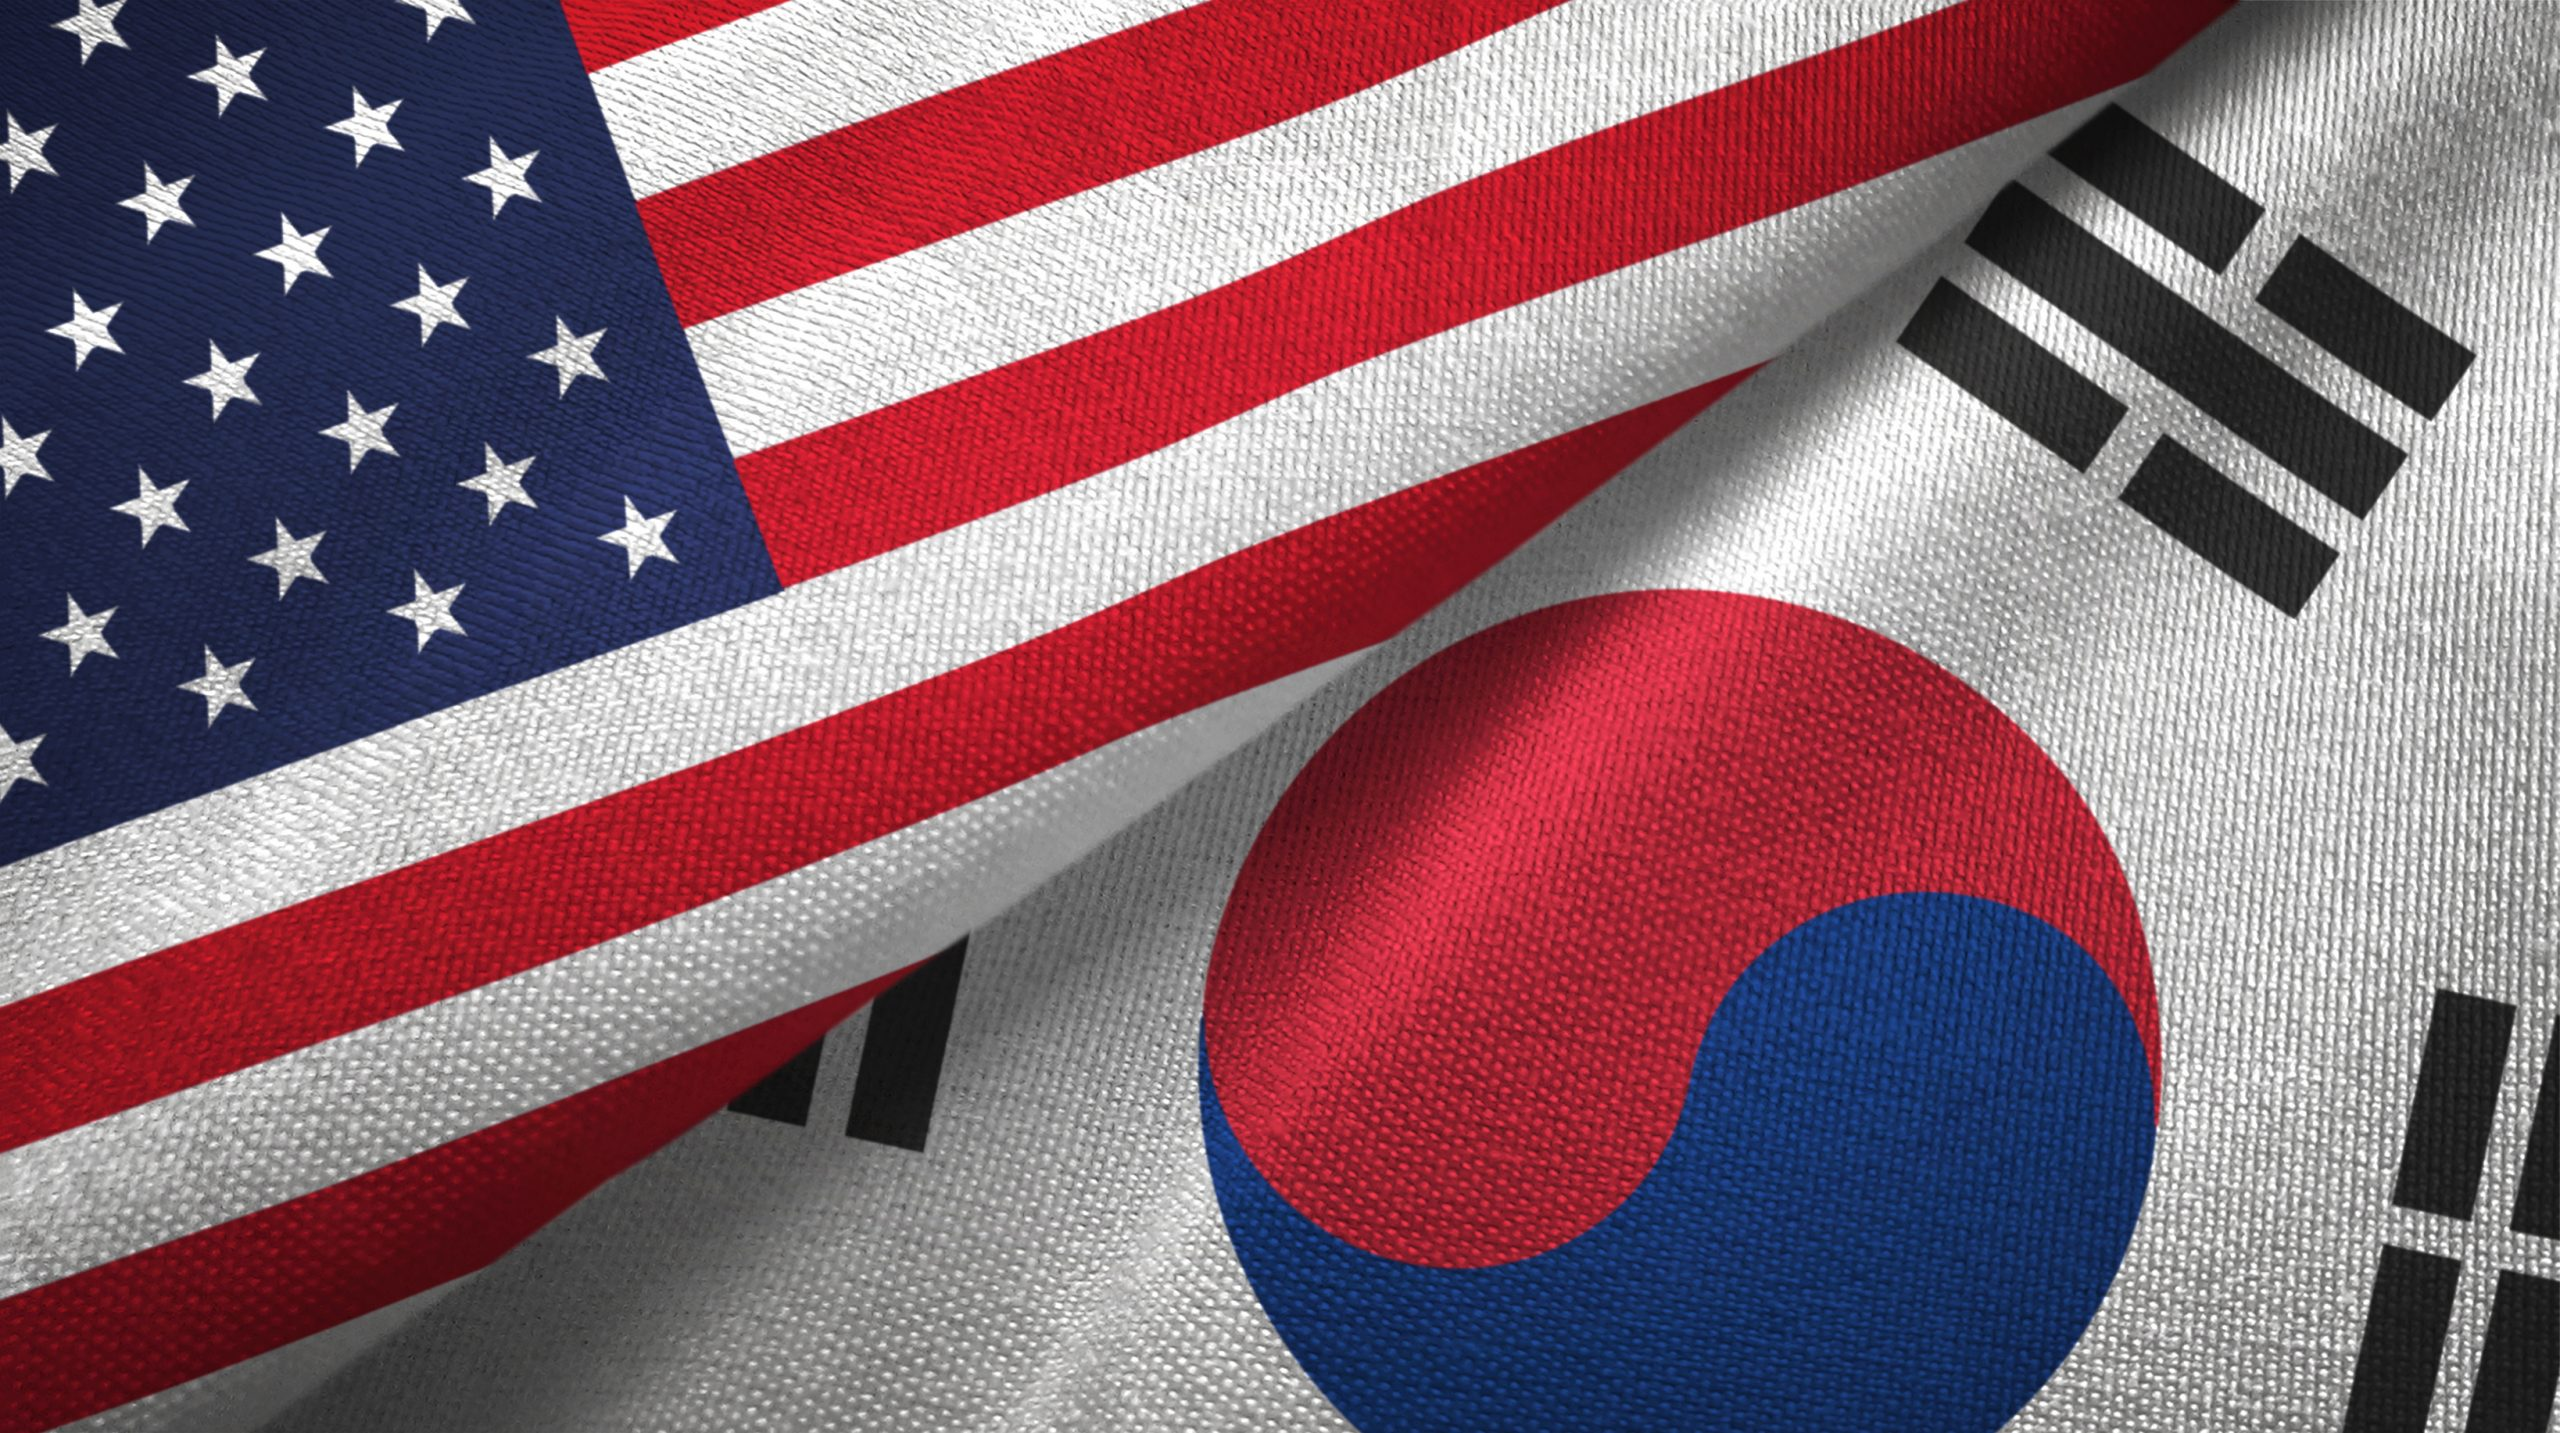 As a Republican of Korean descent, I can't emphasize enough the importance of freedom to make your own choices, the right to life, and the right to protect yourself and those you love.  One fundamental principle behind theRepublican platformis it affirms, consistent with the Declaration of Independence, that we all have the inalienable rights of life, liberty, and the pursuit of happiness.